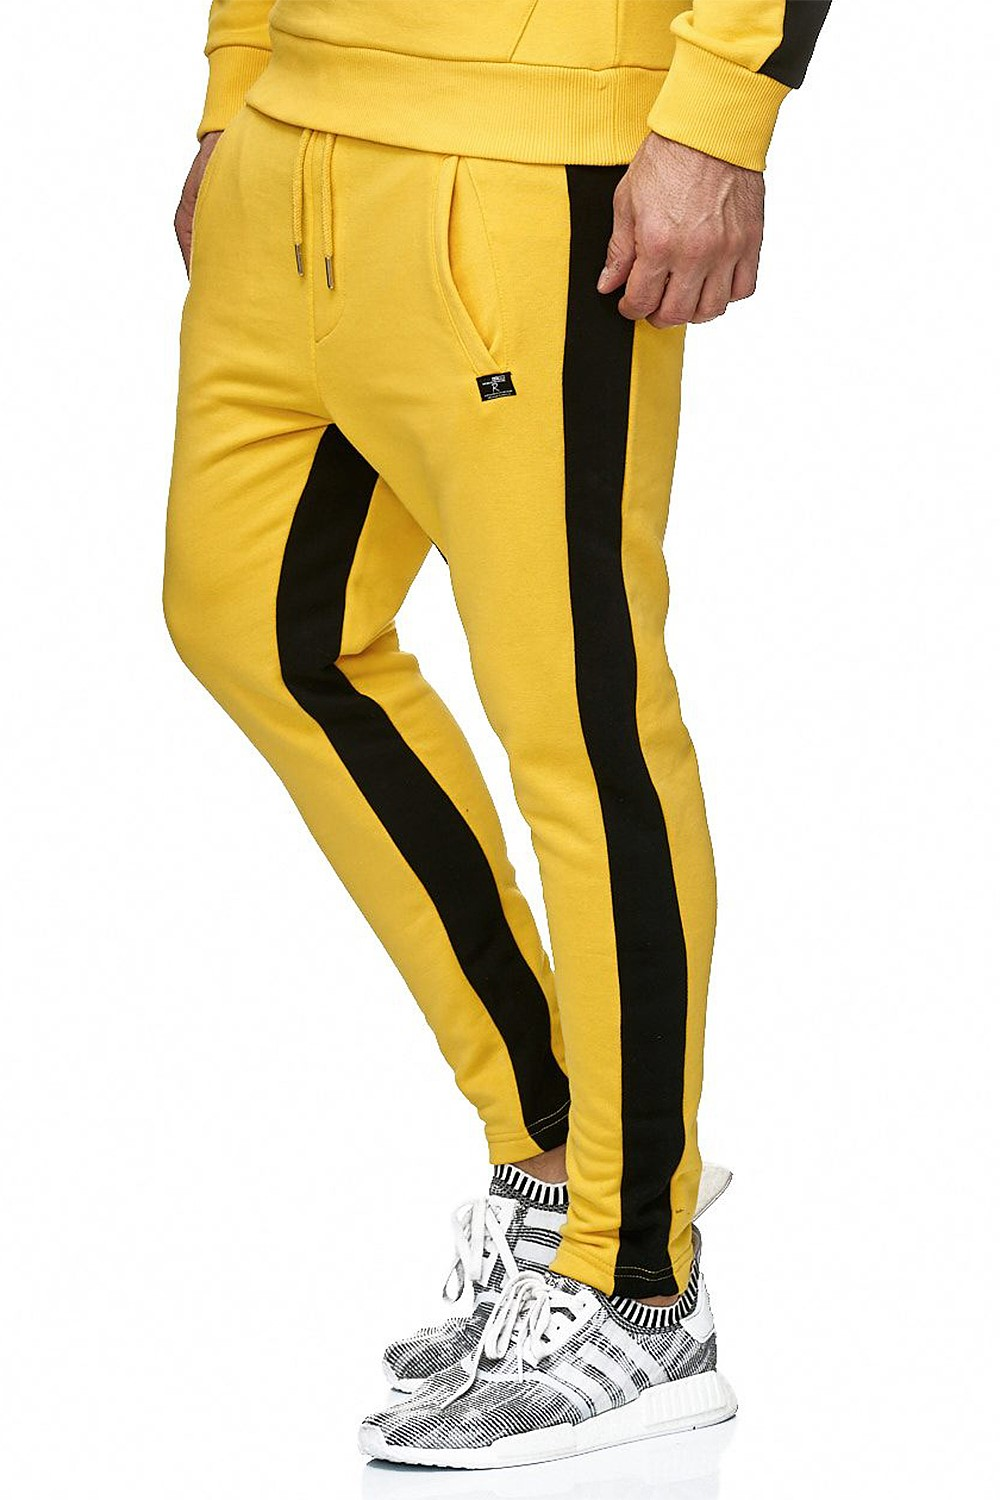 Redbridge-senores-regular-fit-chandal-fitness-sueter-aerobic-pantalones miniatura 17